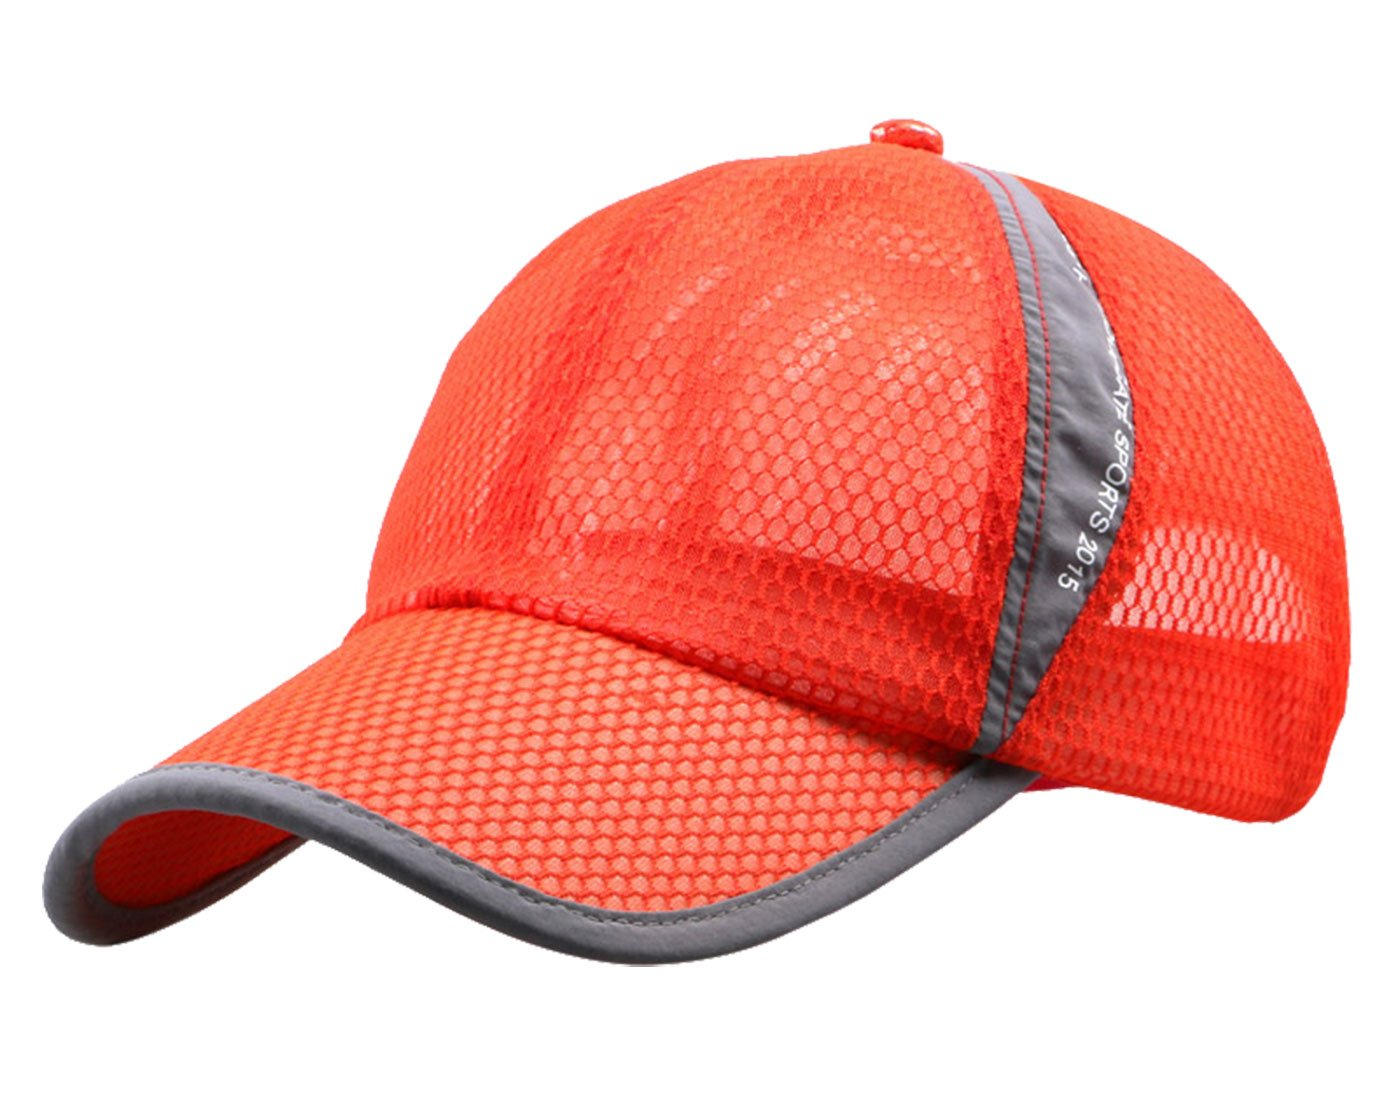 Mens' Womens Summer Outdoor Sport Hat Lightweight Running Hiking Climbing Fishing Sun UPF 50+ Mesh Cap Orange